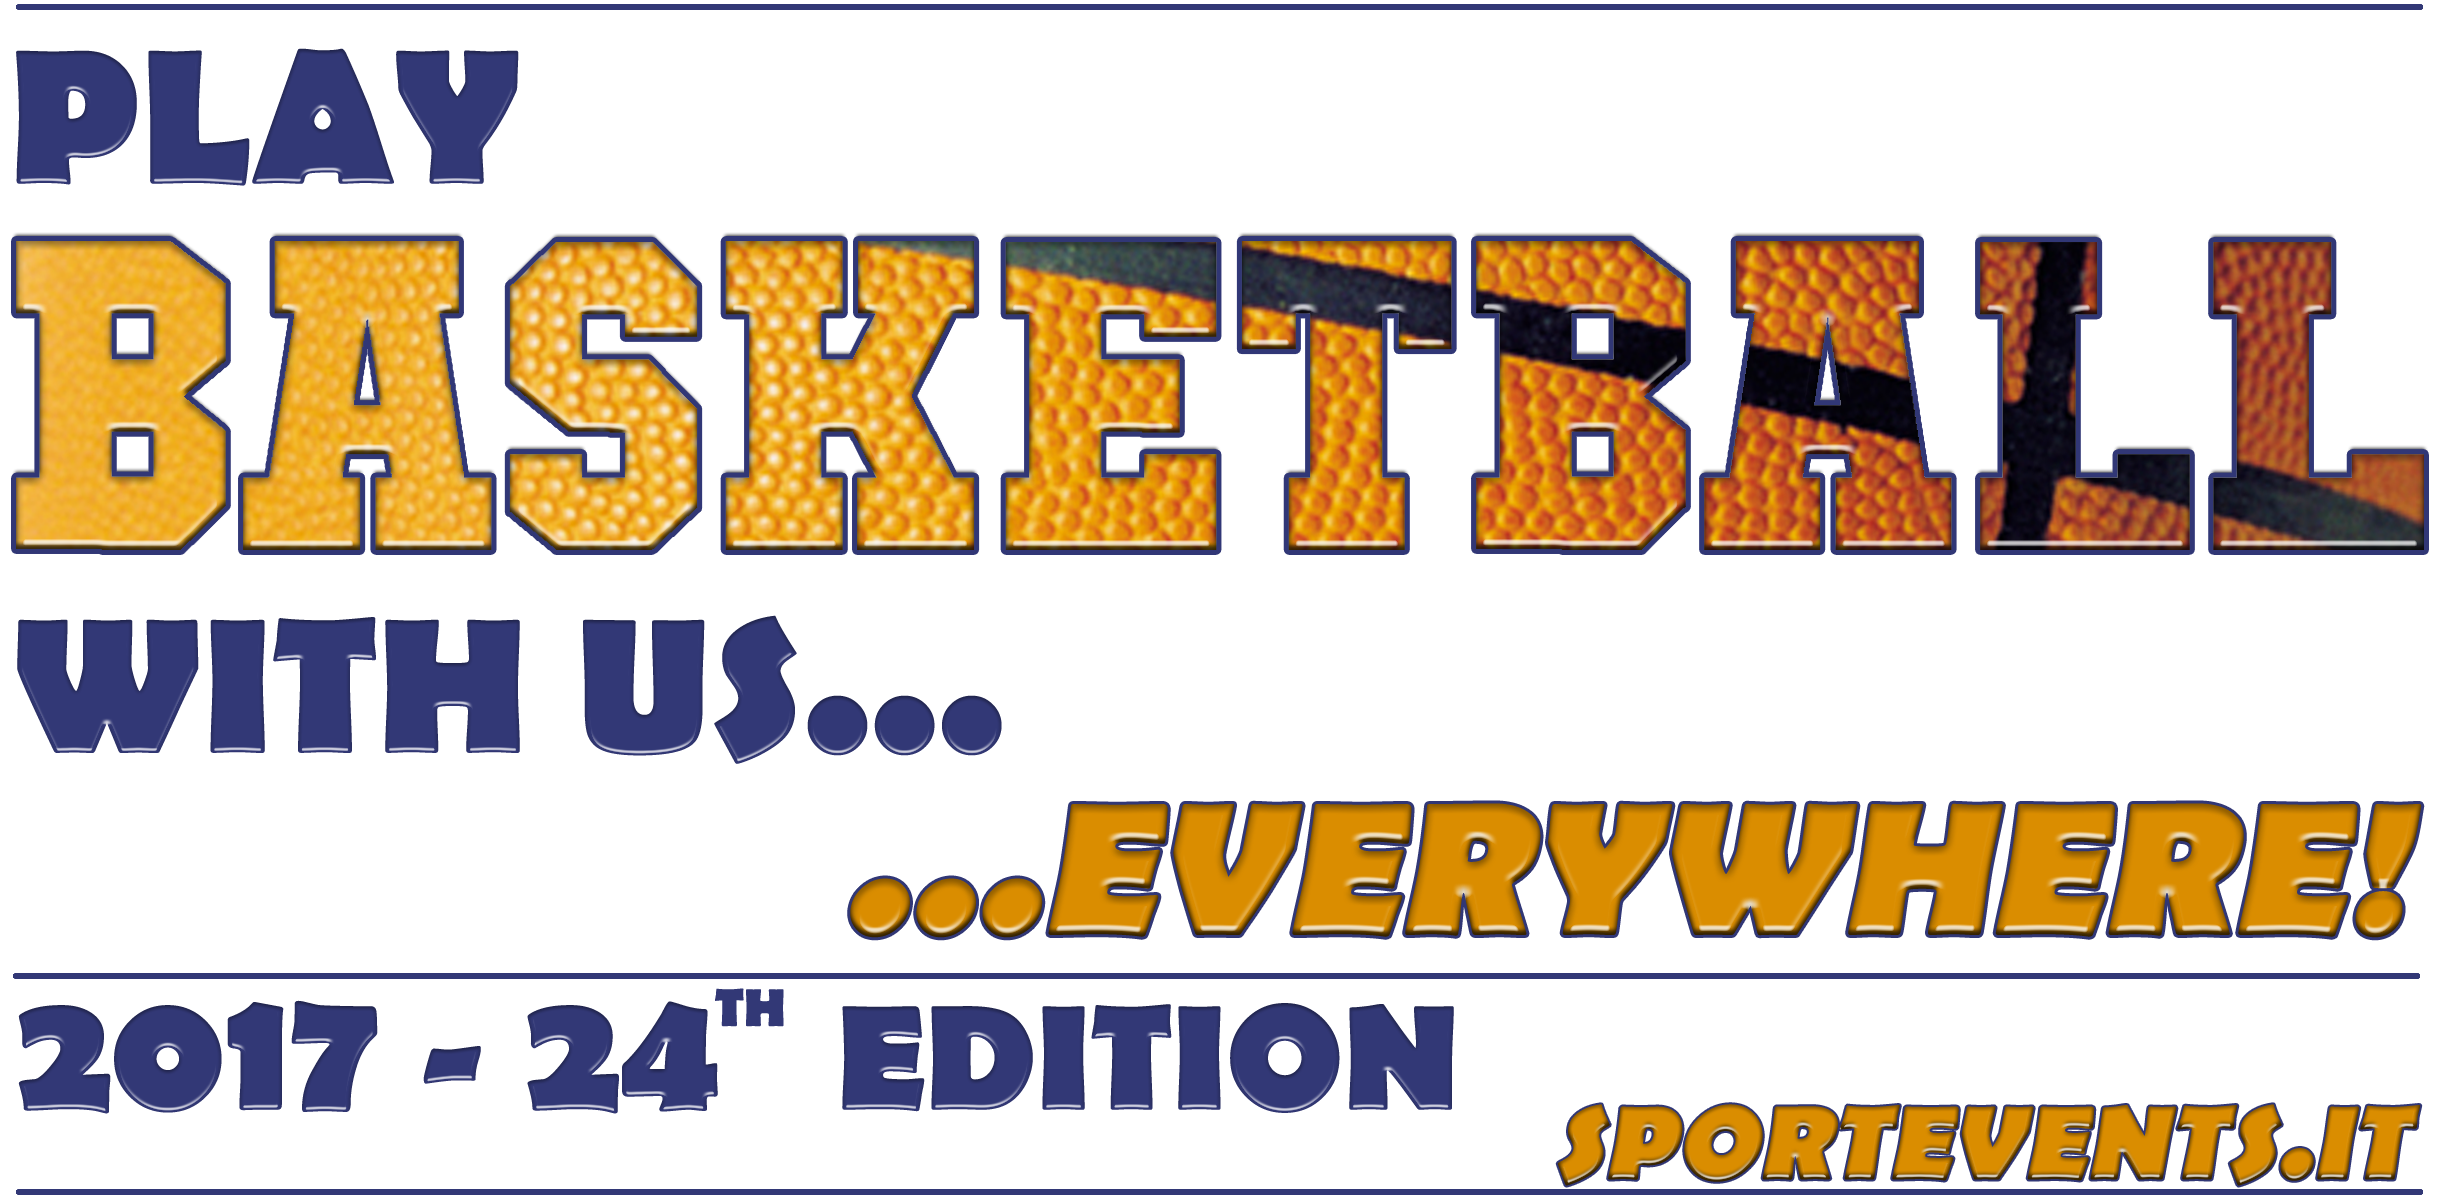 PLAY BASKETBALL WITH US... EVERYWHERE - 2017: 24th Edition